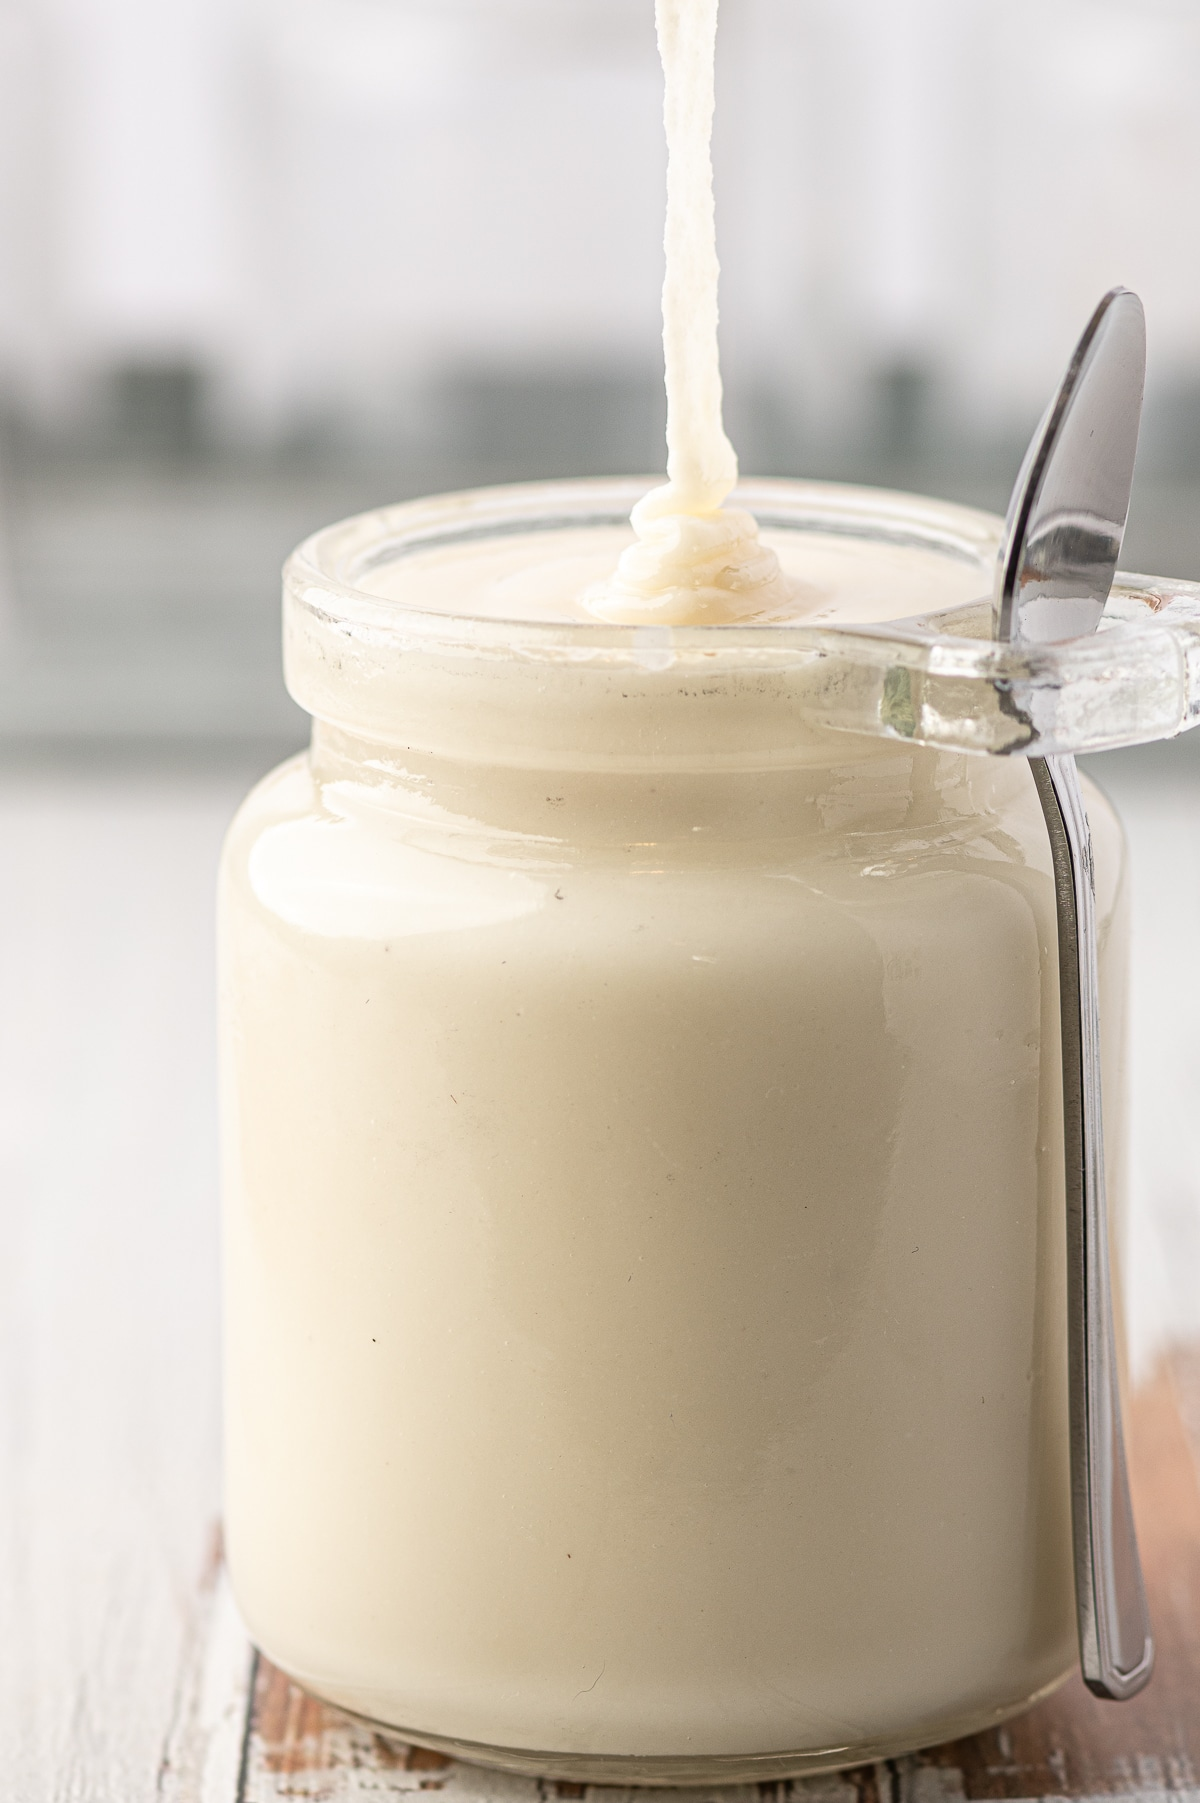 Just made low carb coconut butter being poured into a glass jar against a grey background